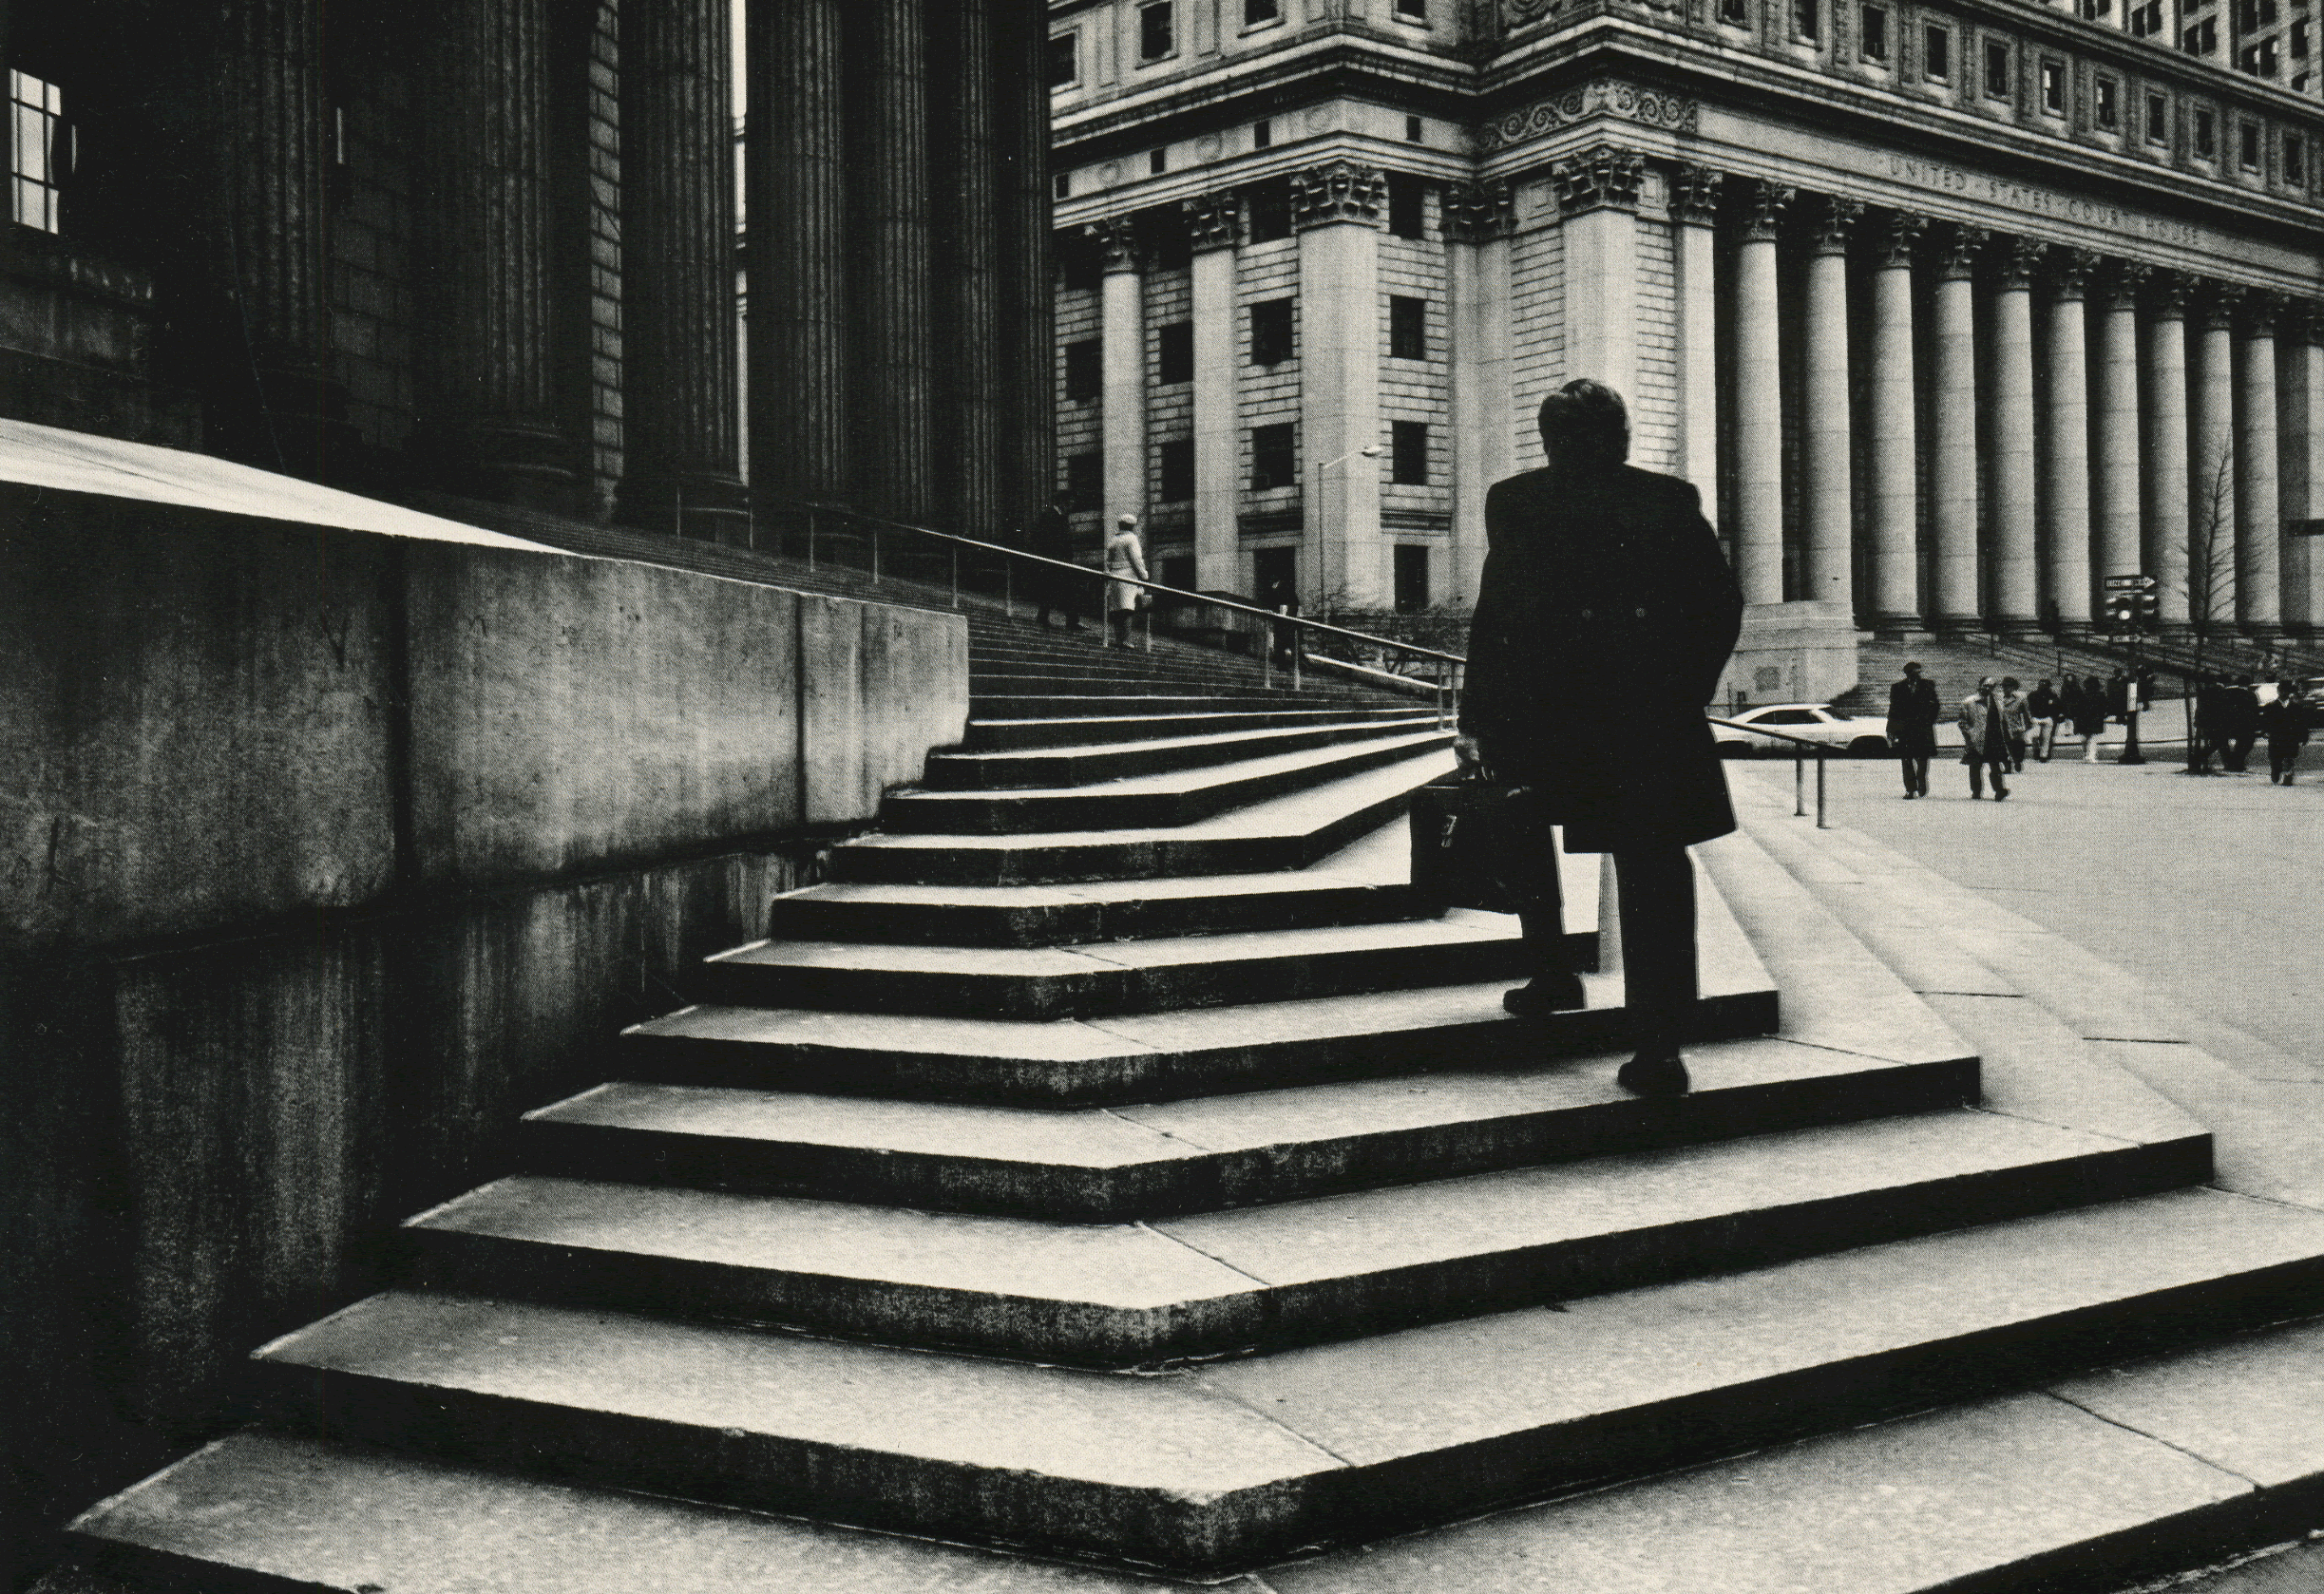 Wall Street - Charles Gatewood photographs